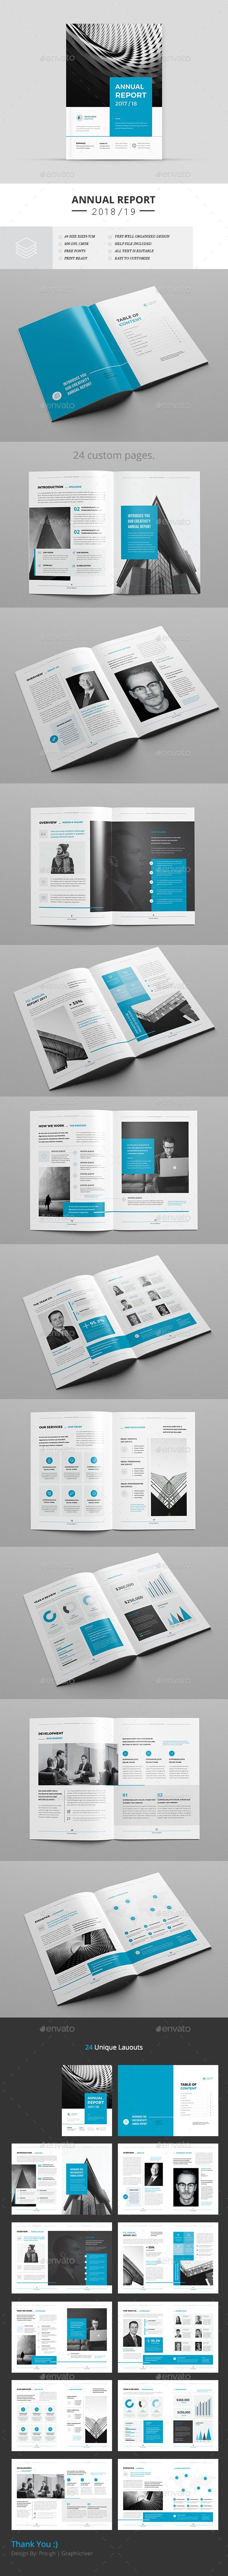 Annual Report Brochure Template InDesign INDD - 24 Custom Pages